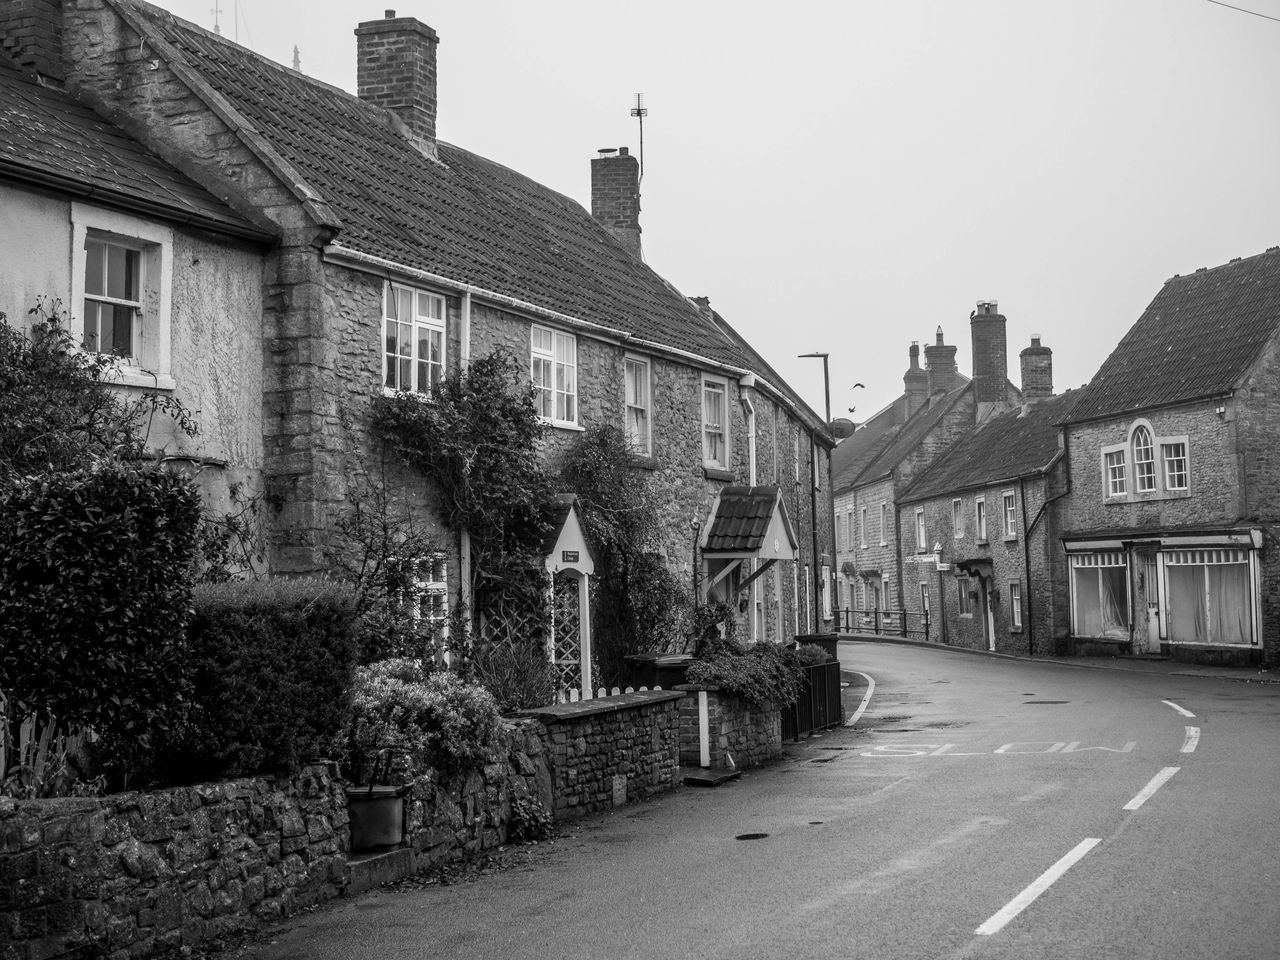 Architecture Black And White Building Exterior Built Structure Day English Village House Medieval No People Old Houses Outdoors Sky Village